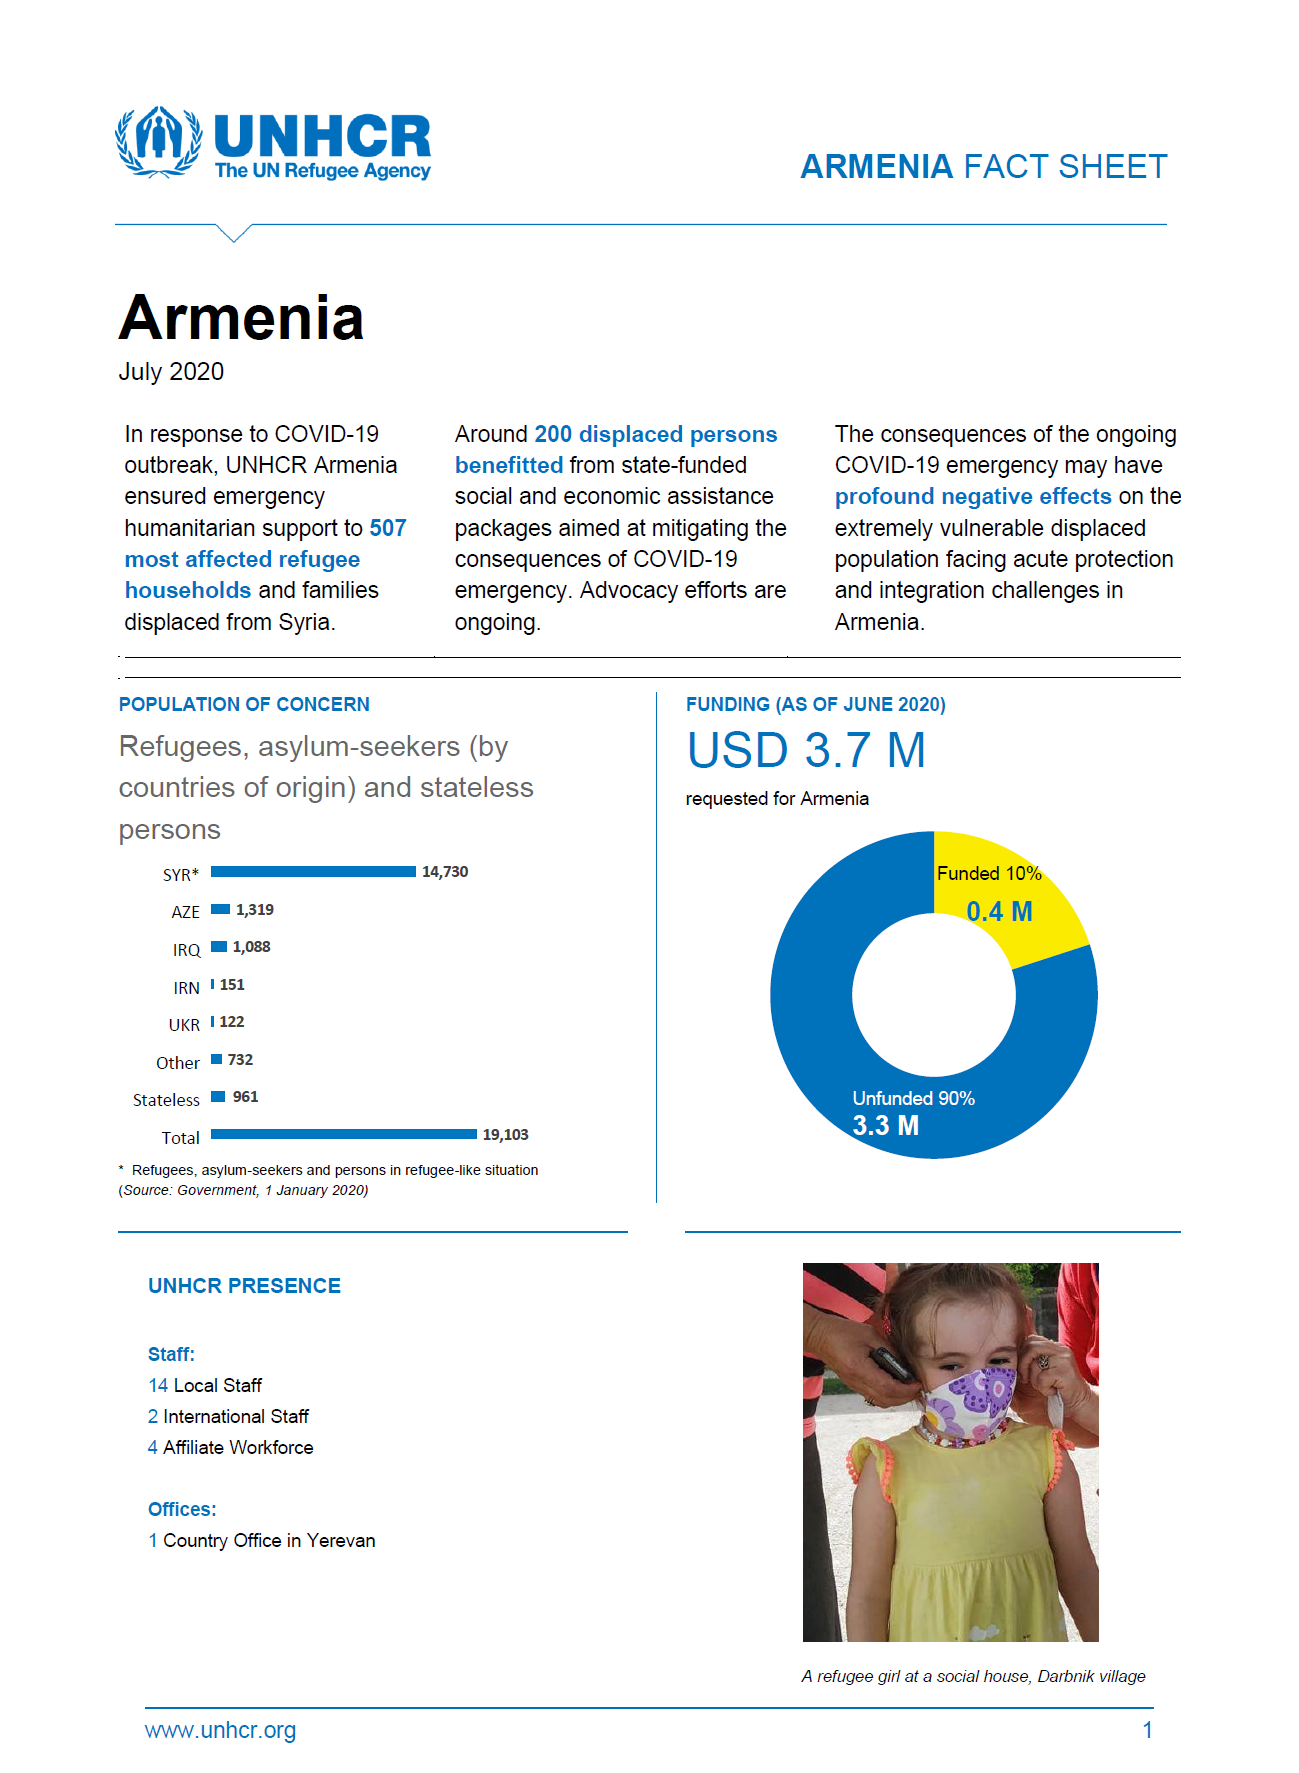 UNHCR Fact Sheet's cover page for July 2020